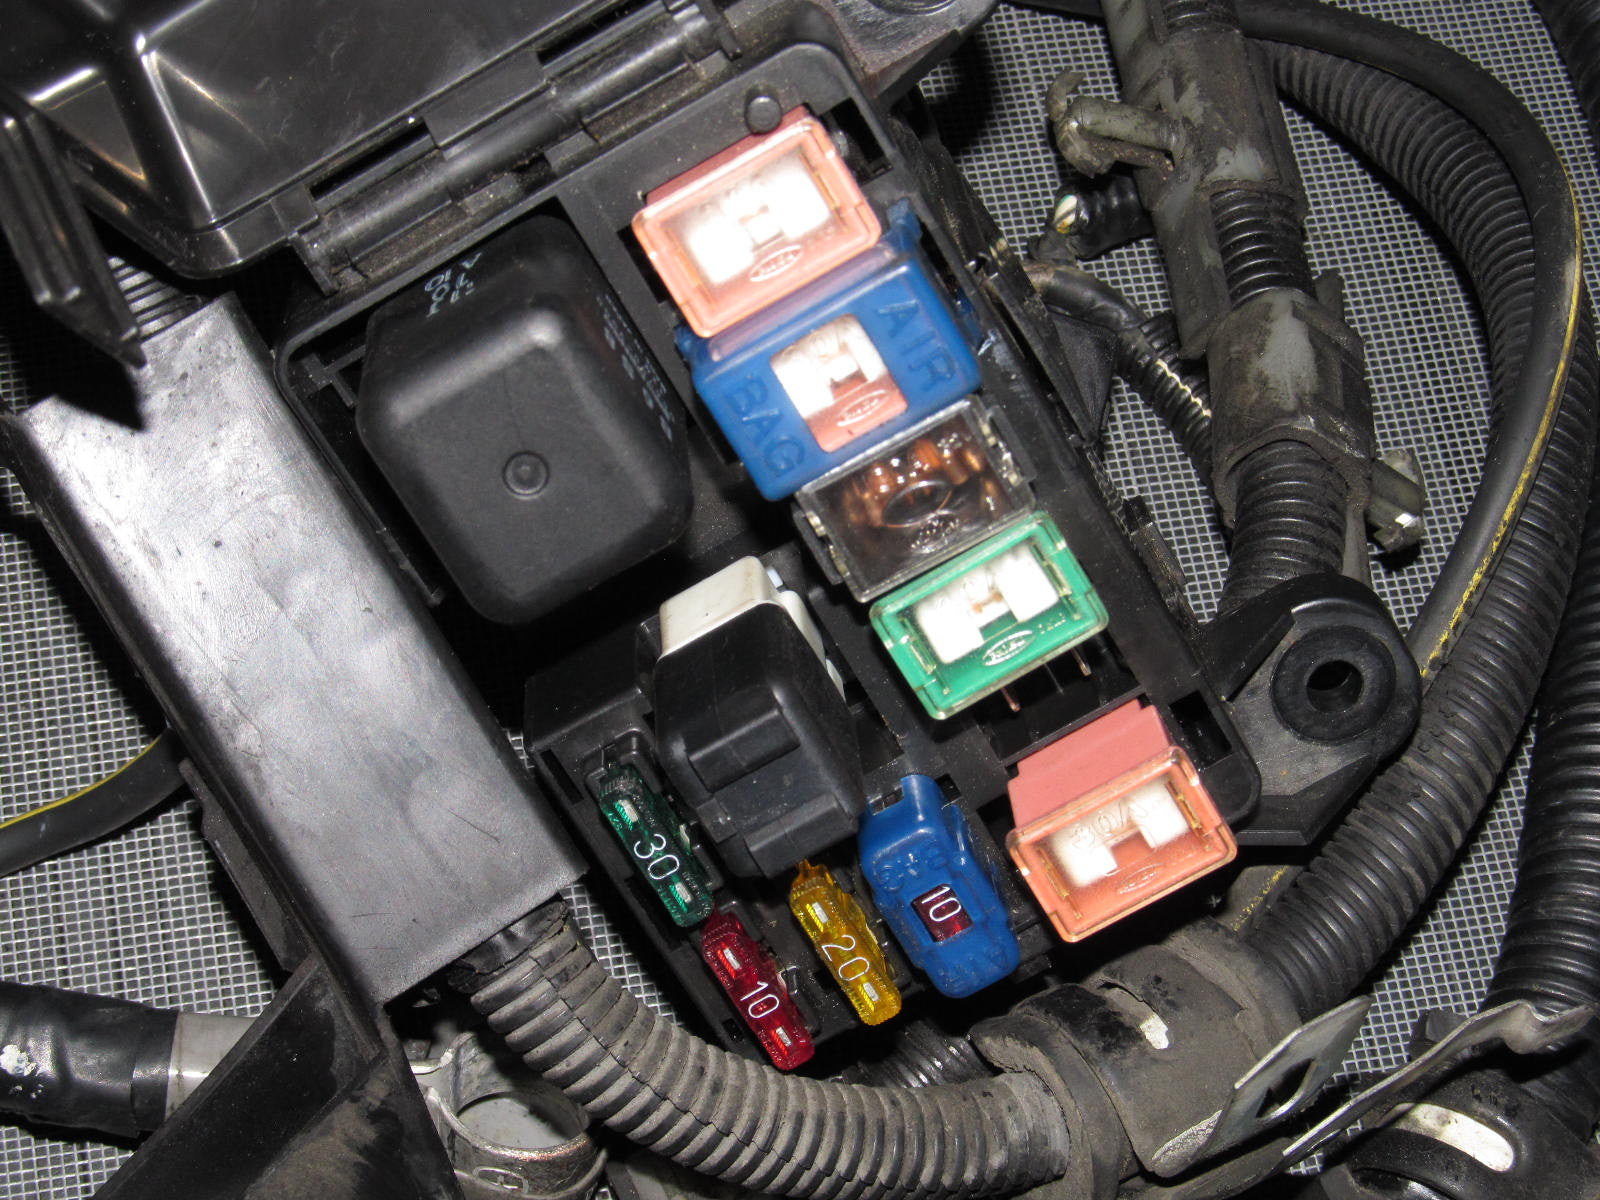 91 Miata Fuse Box Location 26 Wiring Diagram Images Mazda Panel Img 3742v1407462079 90 92 93 Transmission Engine